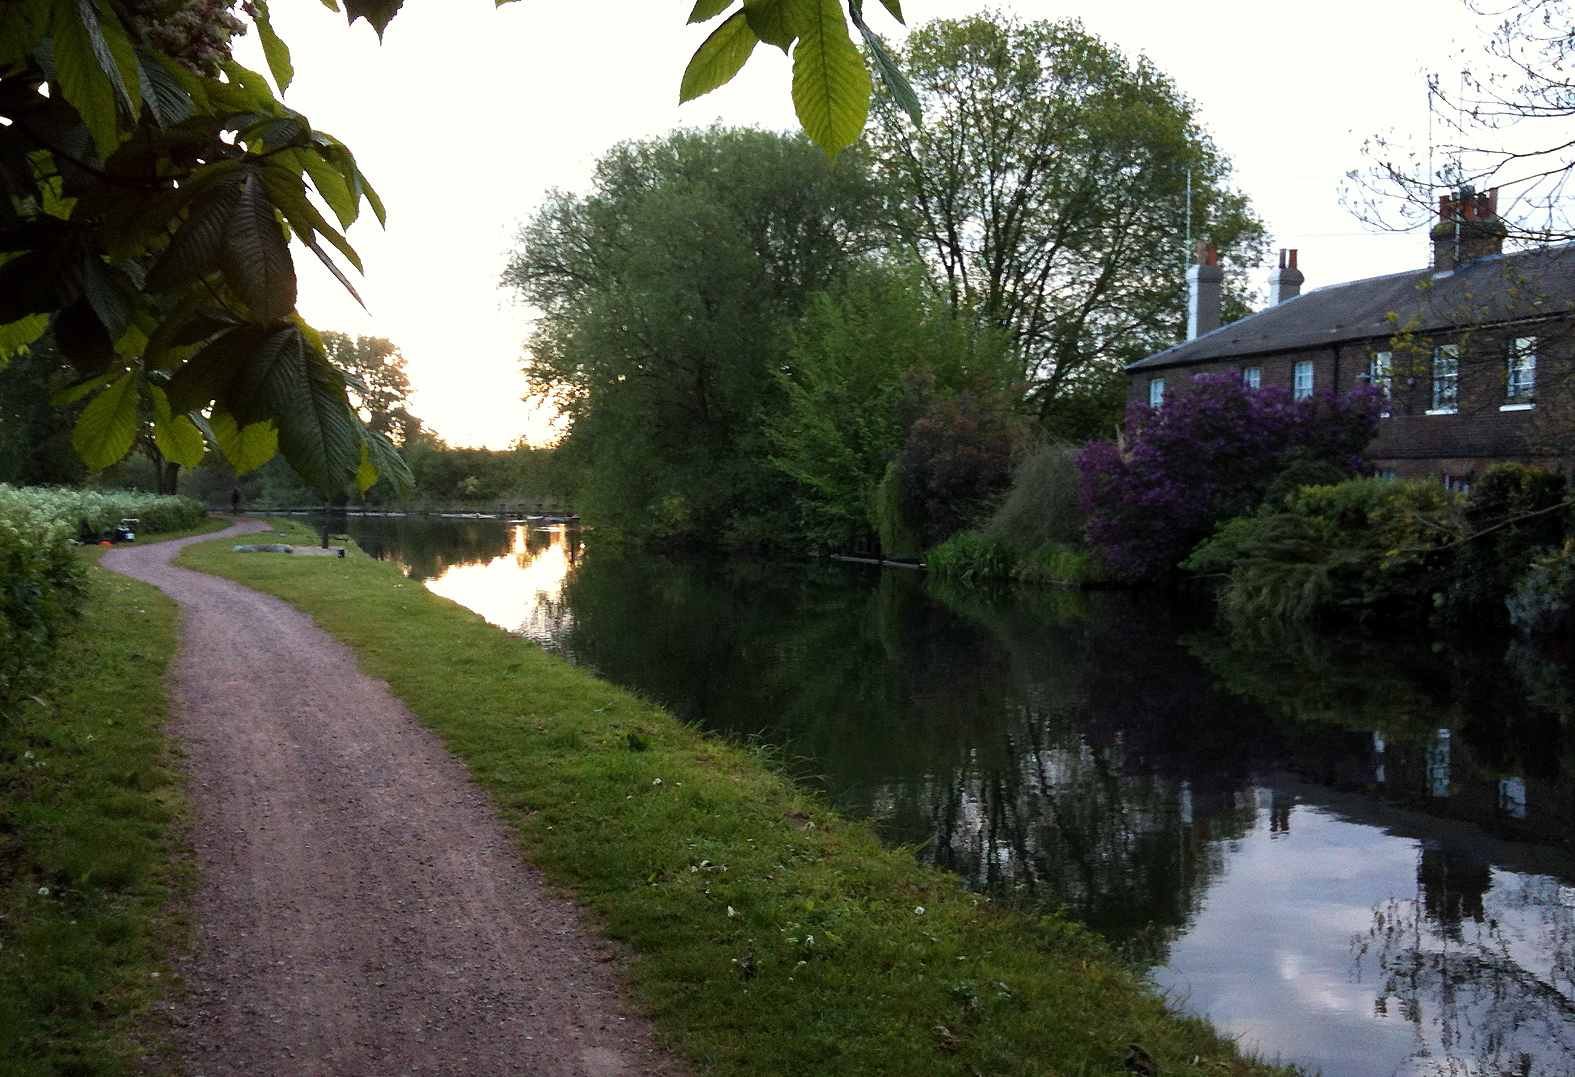 A picturesque spot, and I fancied a bait under those overhanging bushes